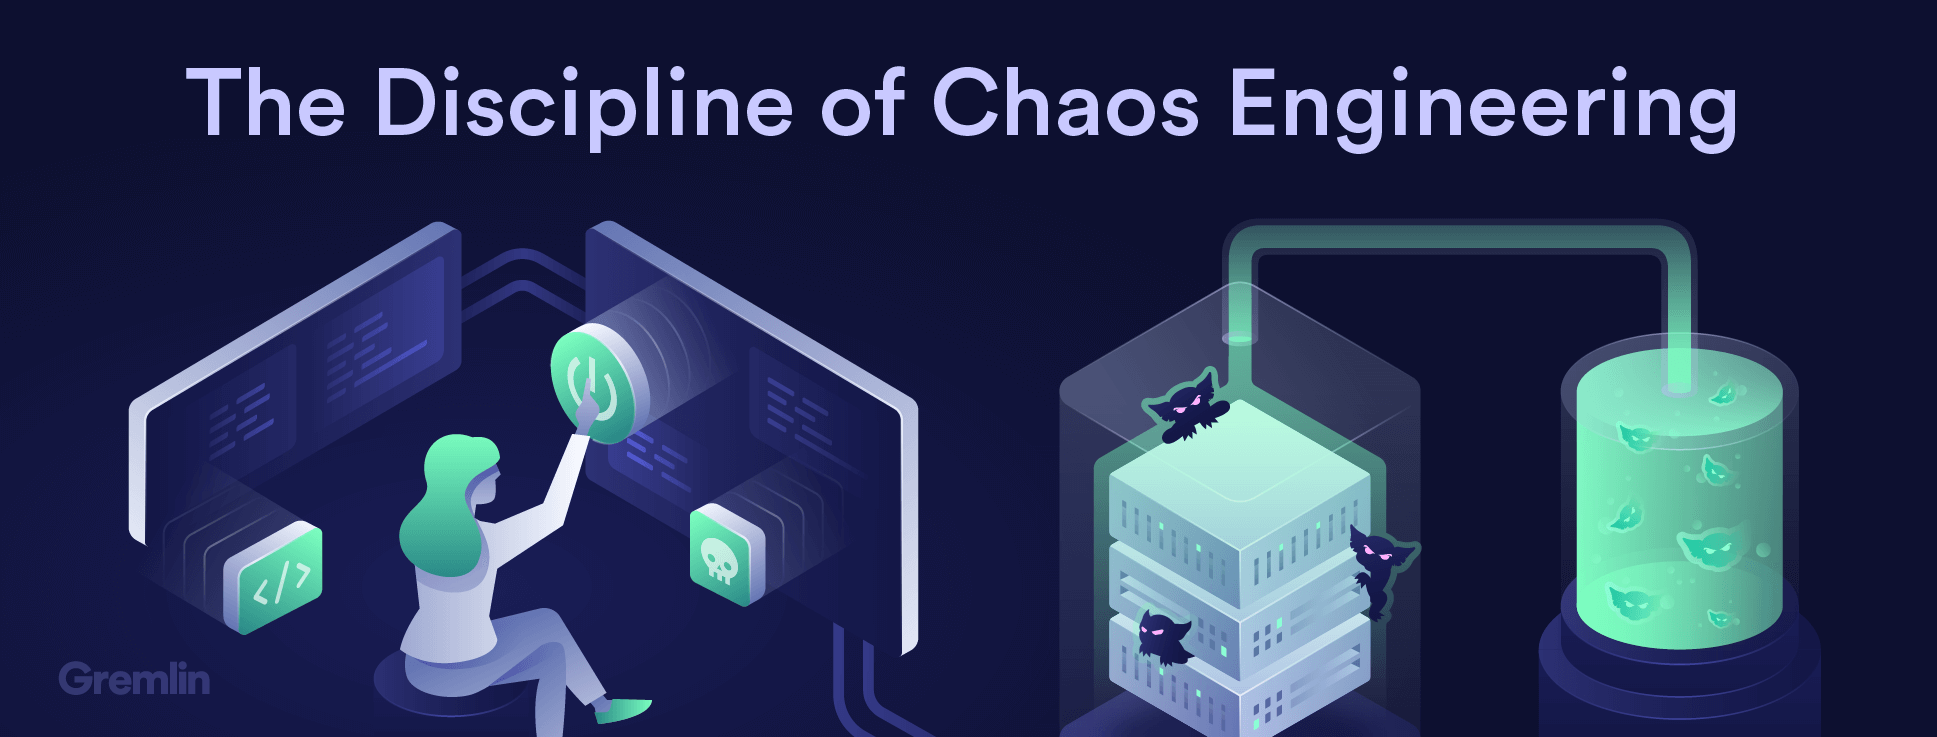 The Discipline of Chaos Engineering